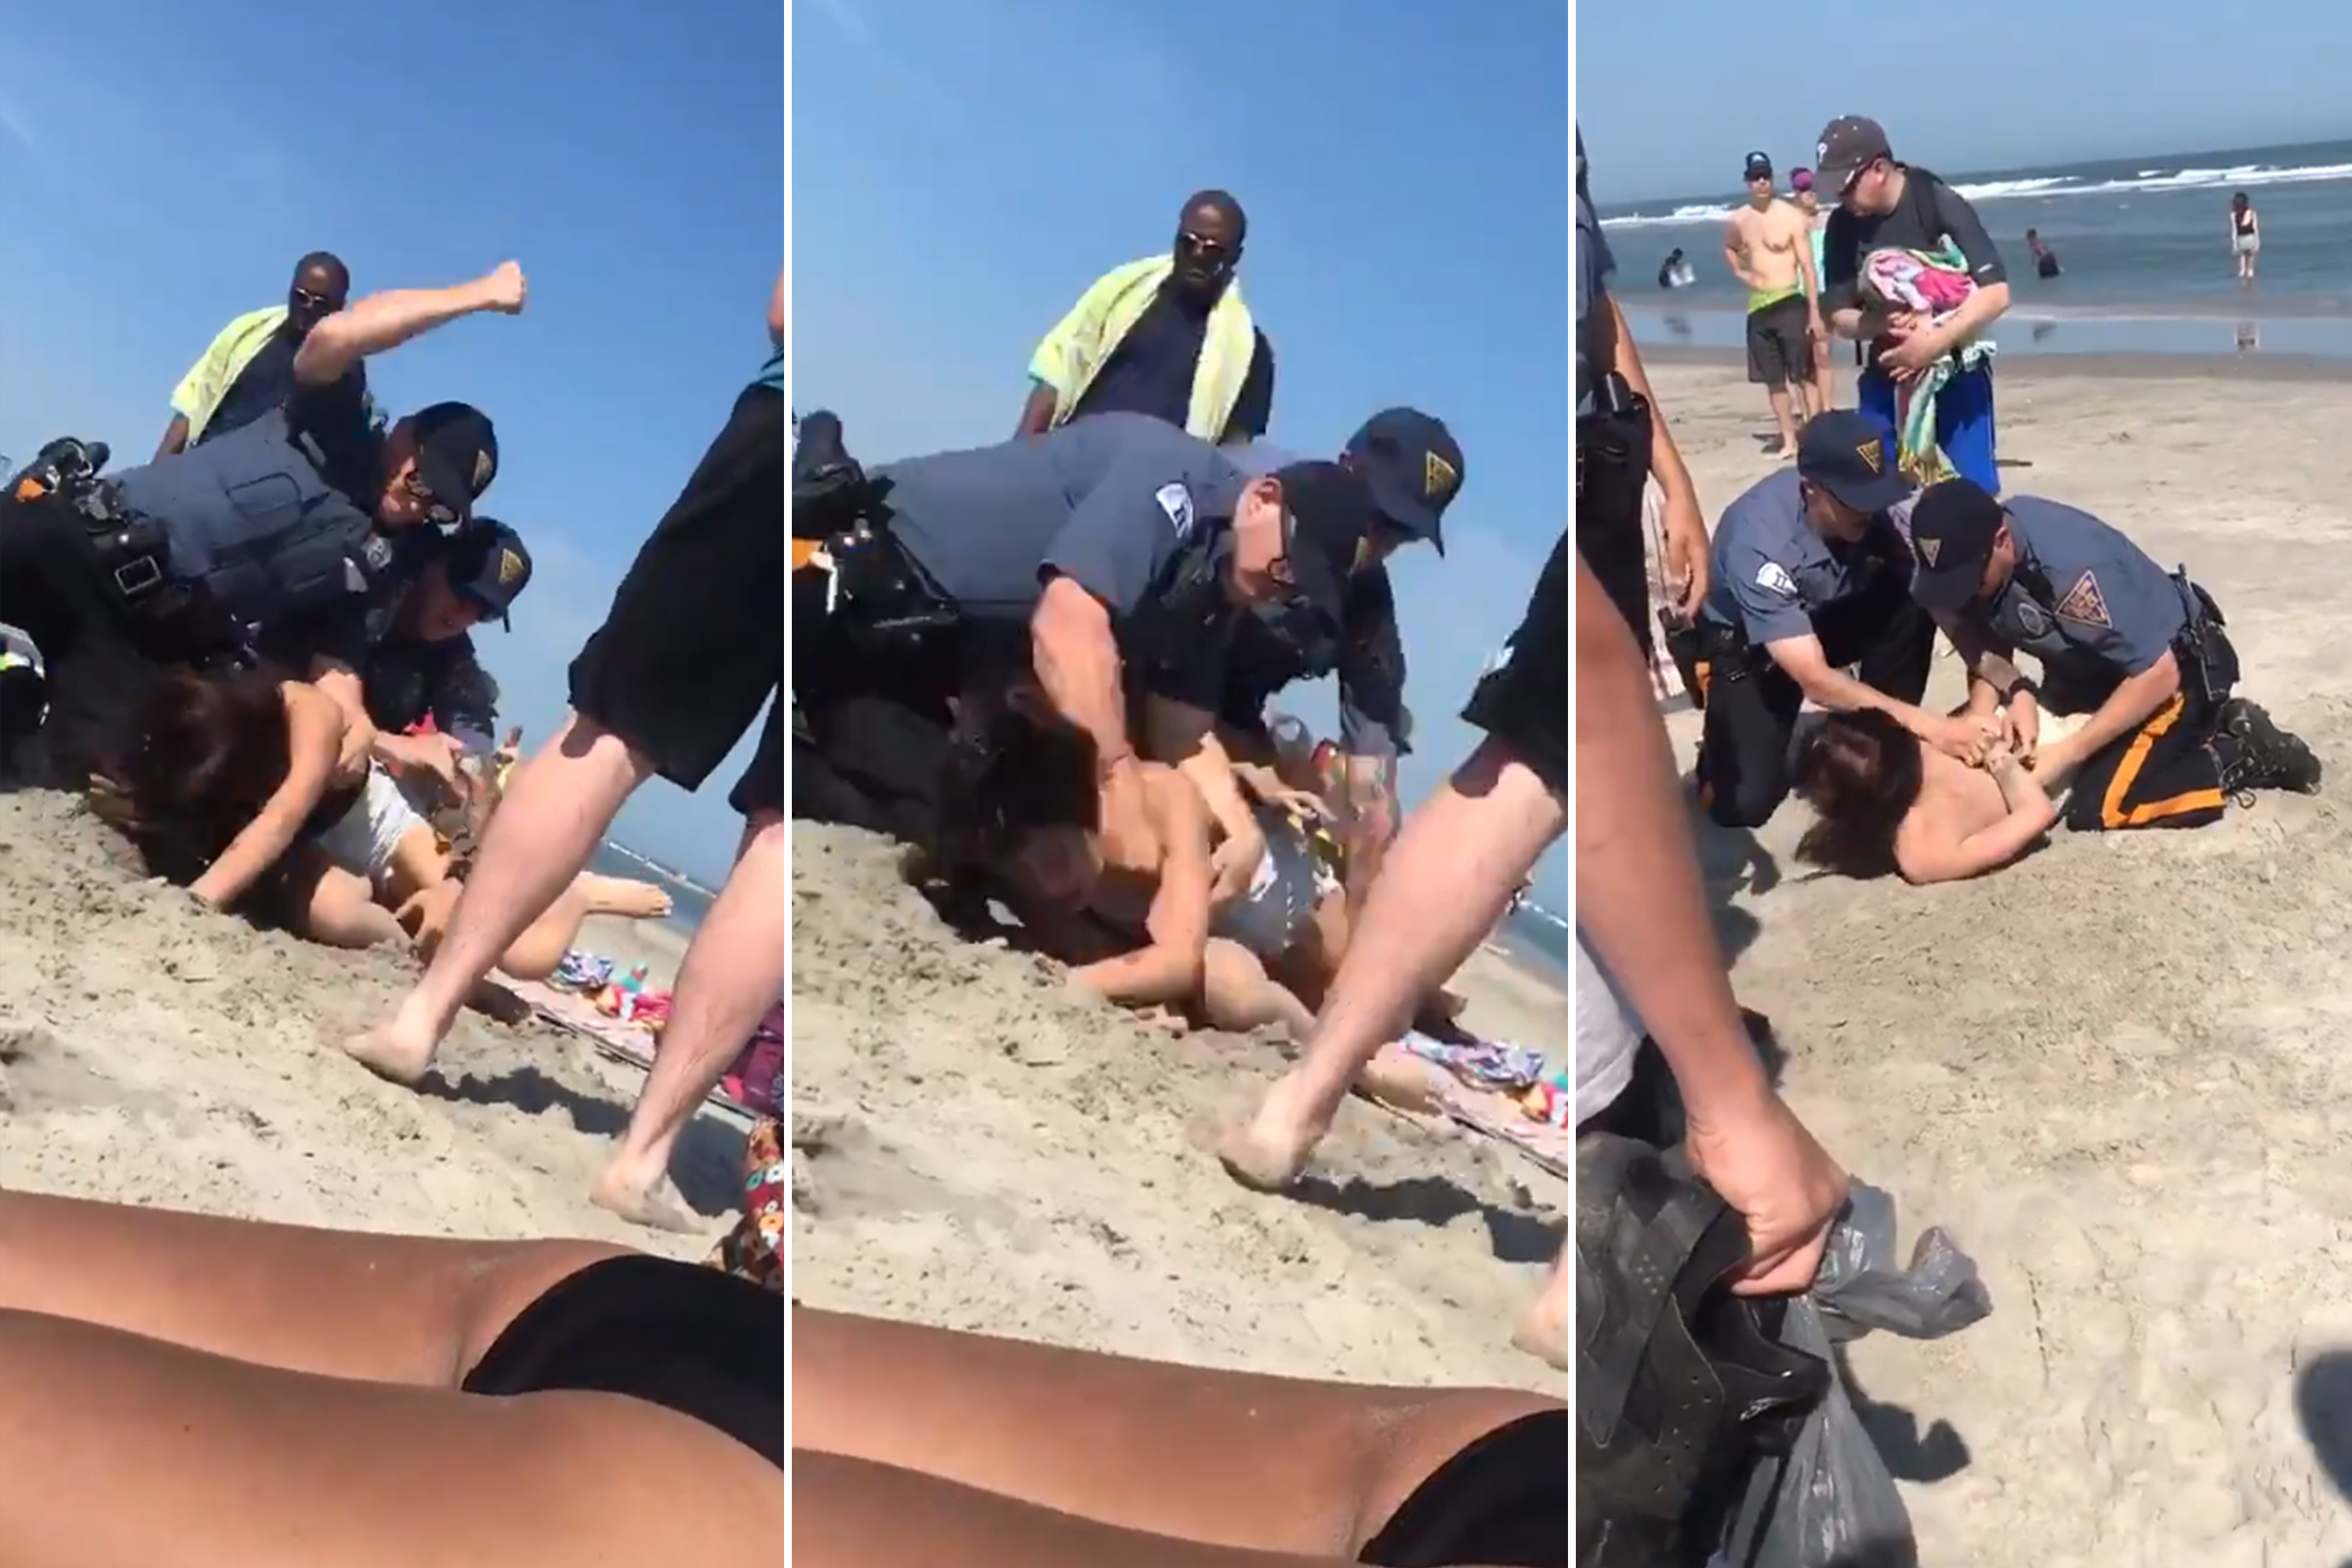 052718-cop-punches-woman-beach-index